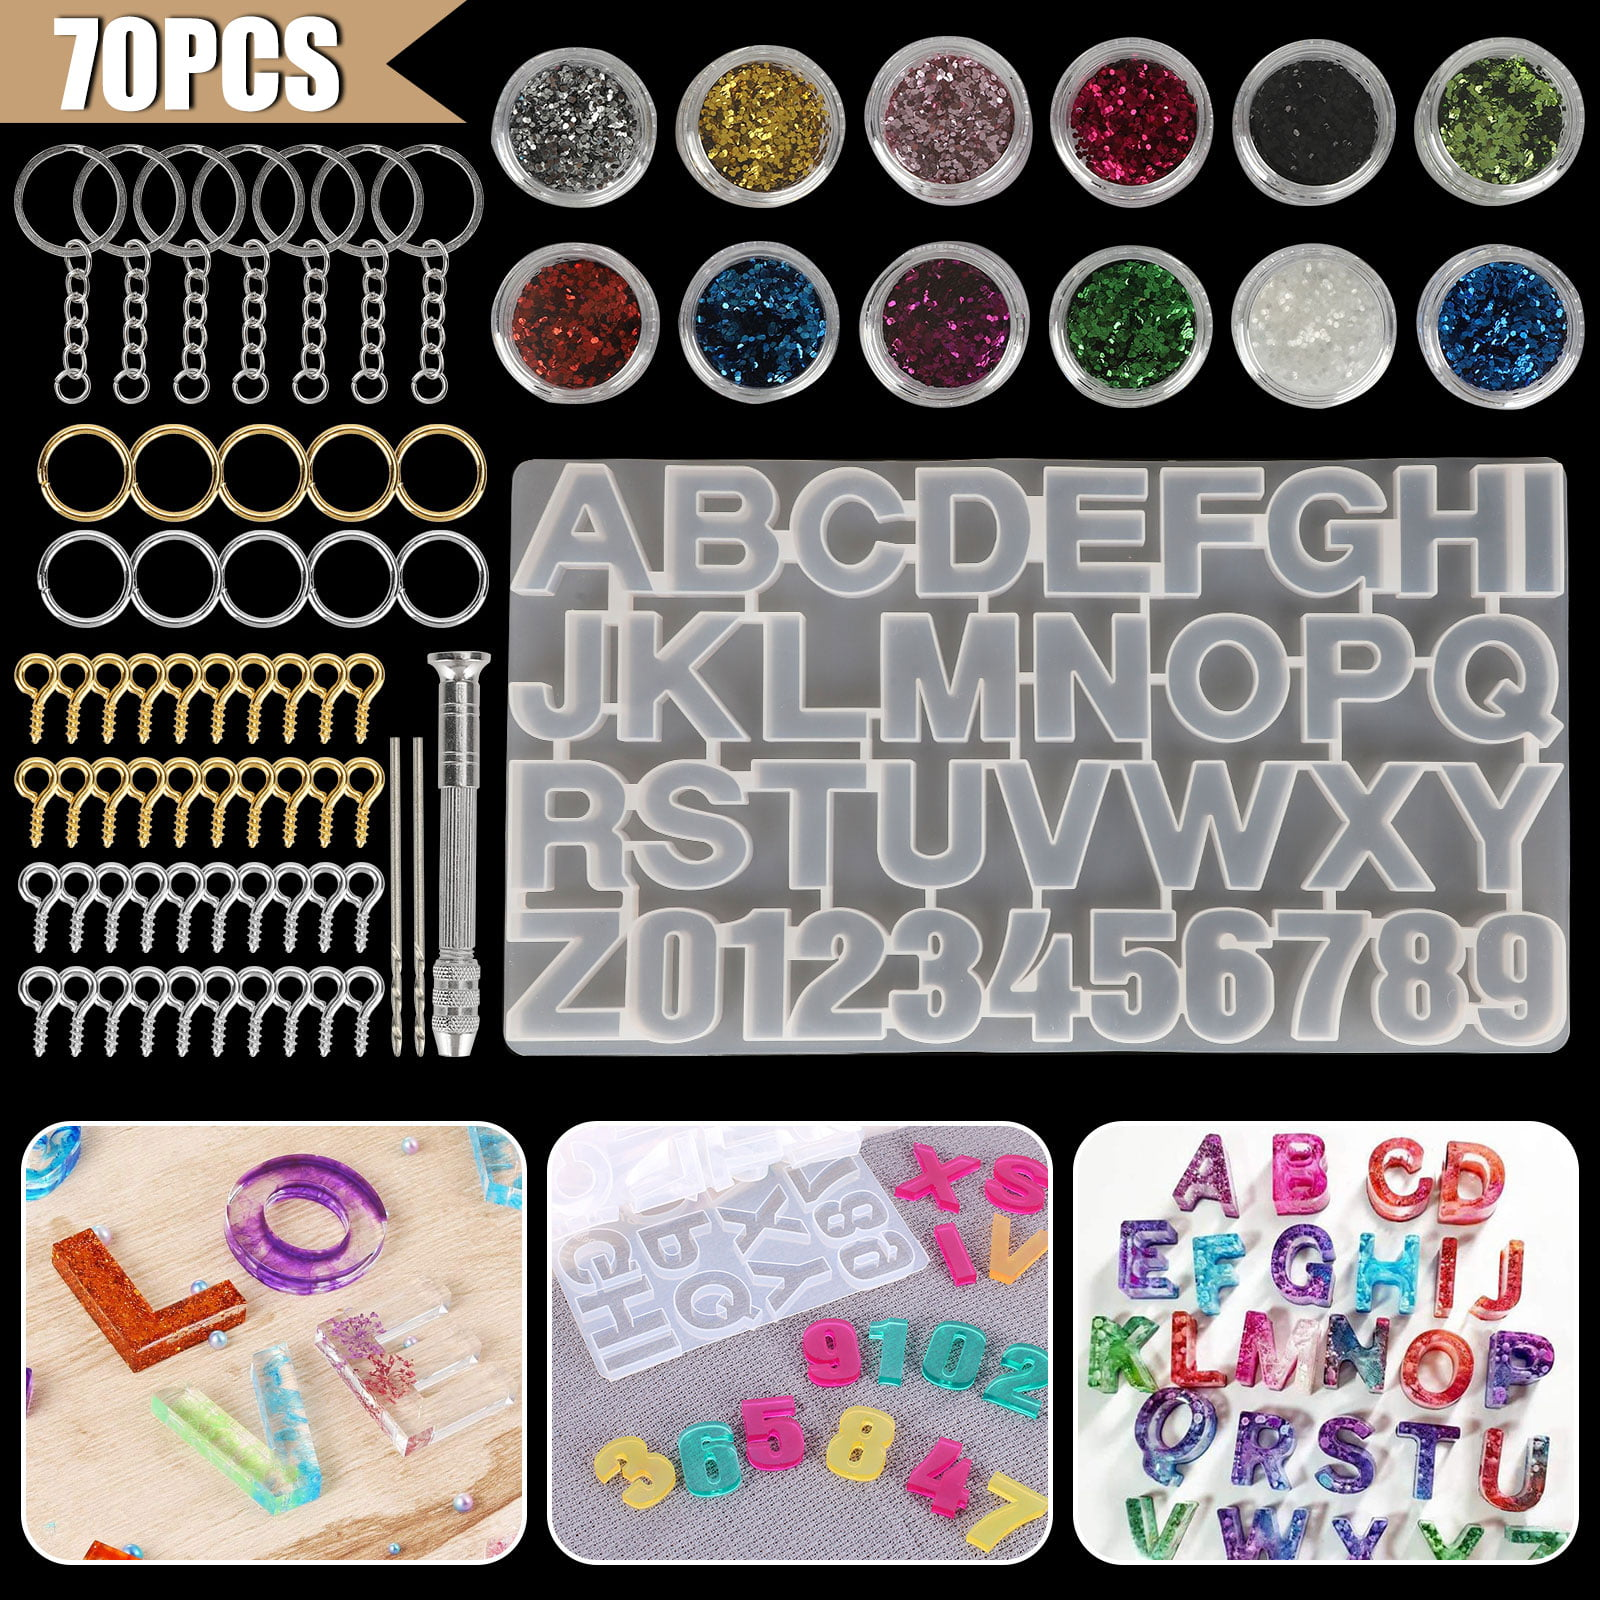 Resin Molds DIY Alphabet Silicone Molds,Letter /& Number Silicone Mold for Epoxy Resin Crafts Resin Casting Alphabet Mold